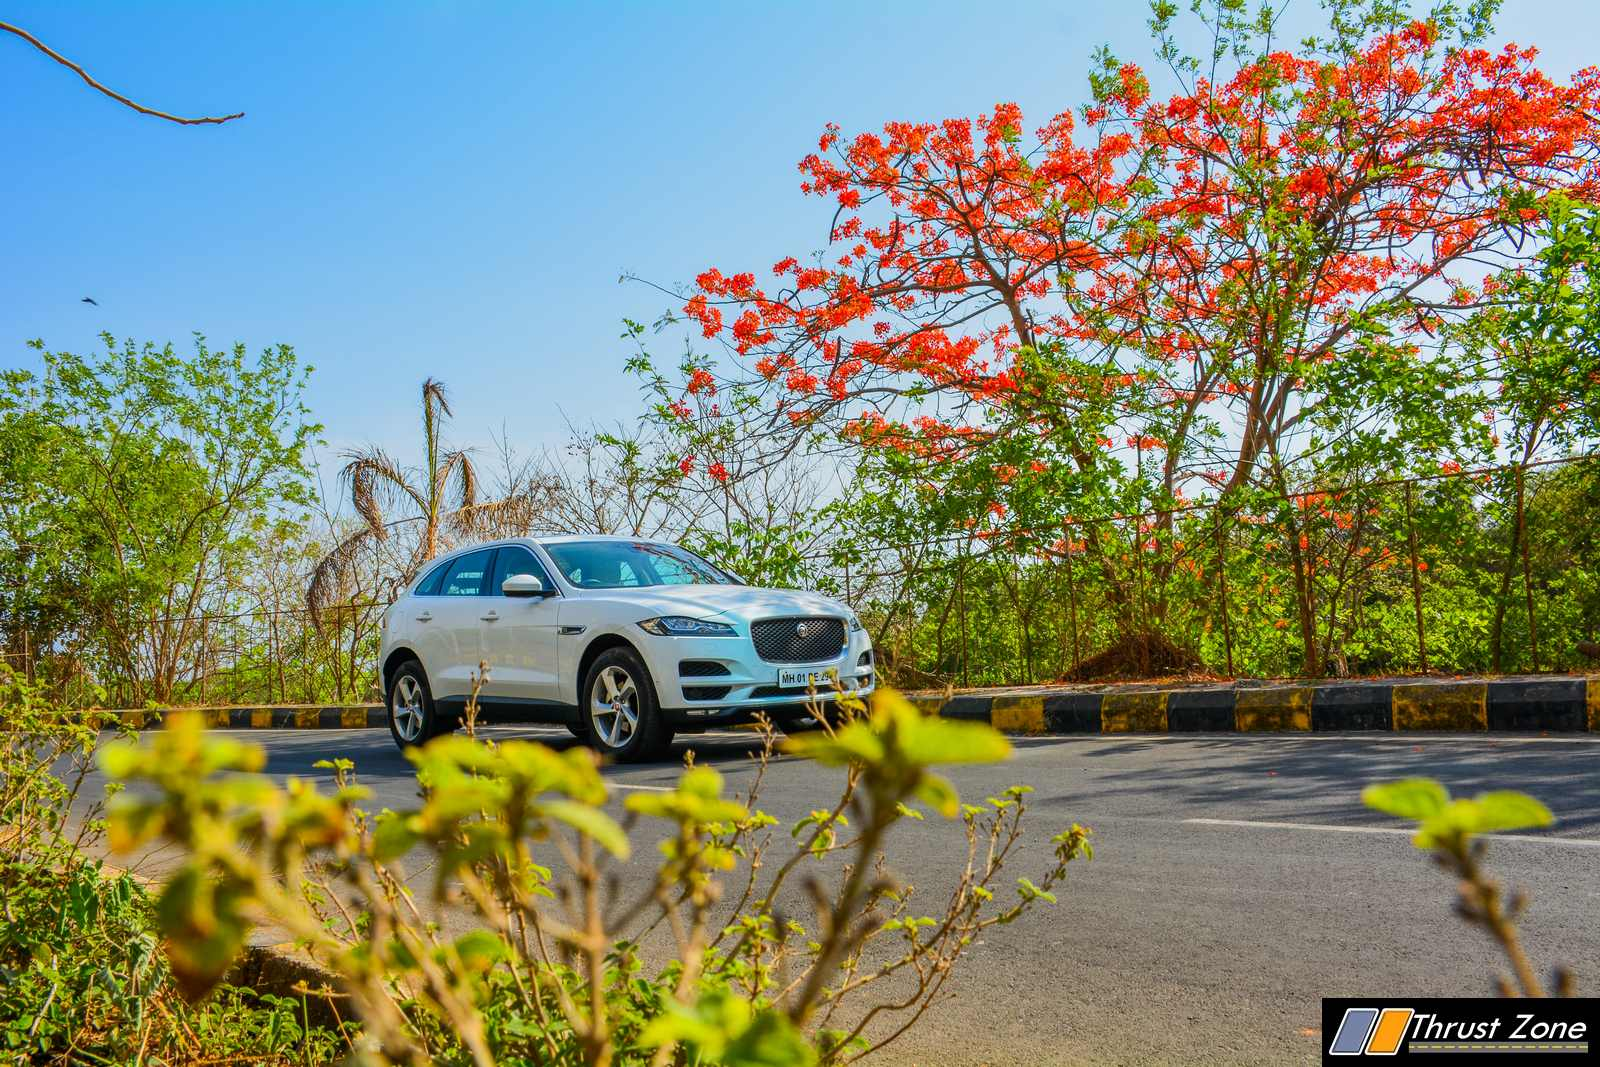 https://www.thrustzone.com/wp-content/uploads/2019/07/2019-Jaguar-F-Pace-Petrol-India-Prestige-Review-6.jpg